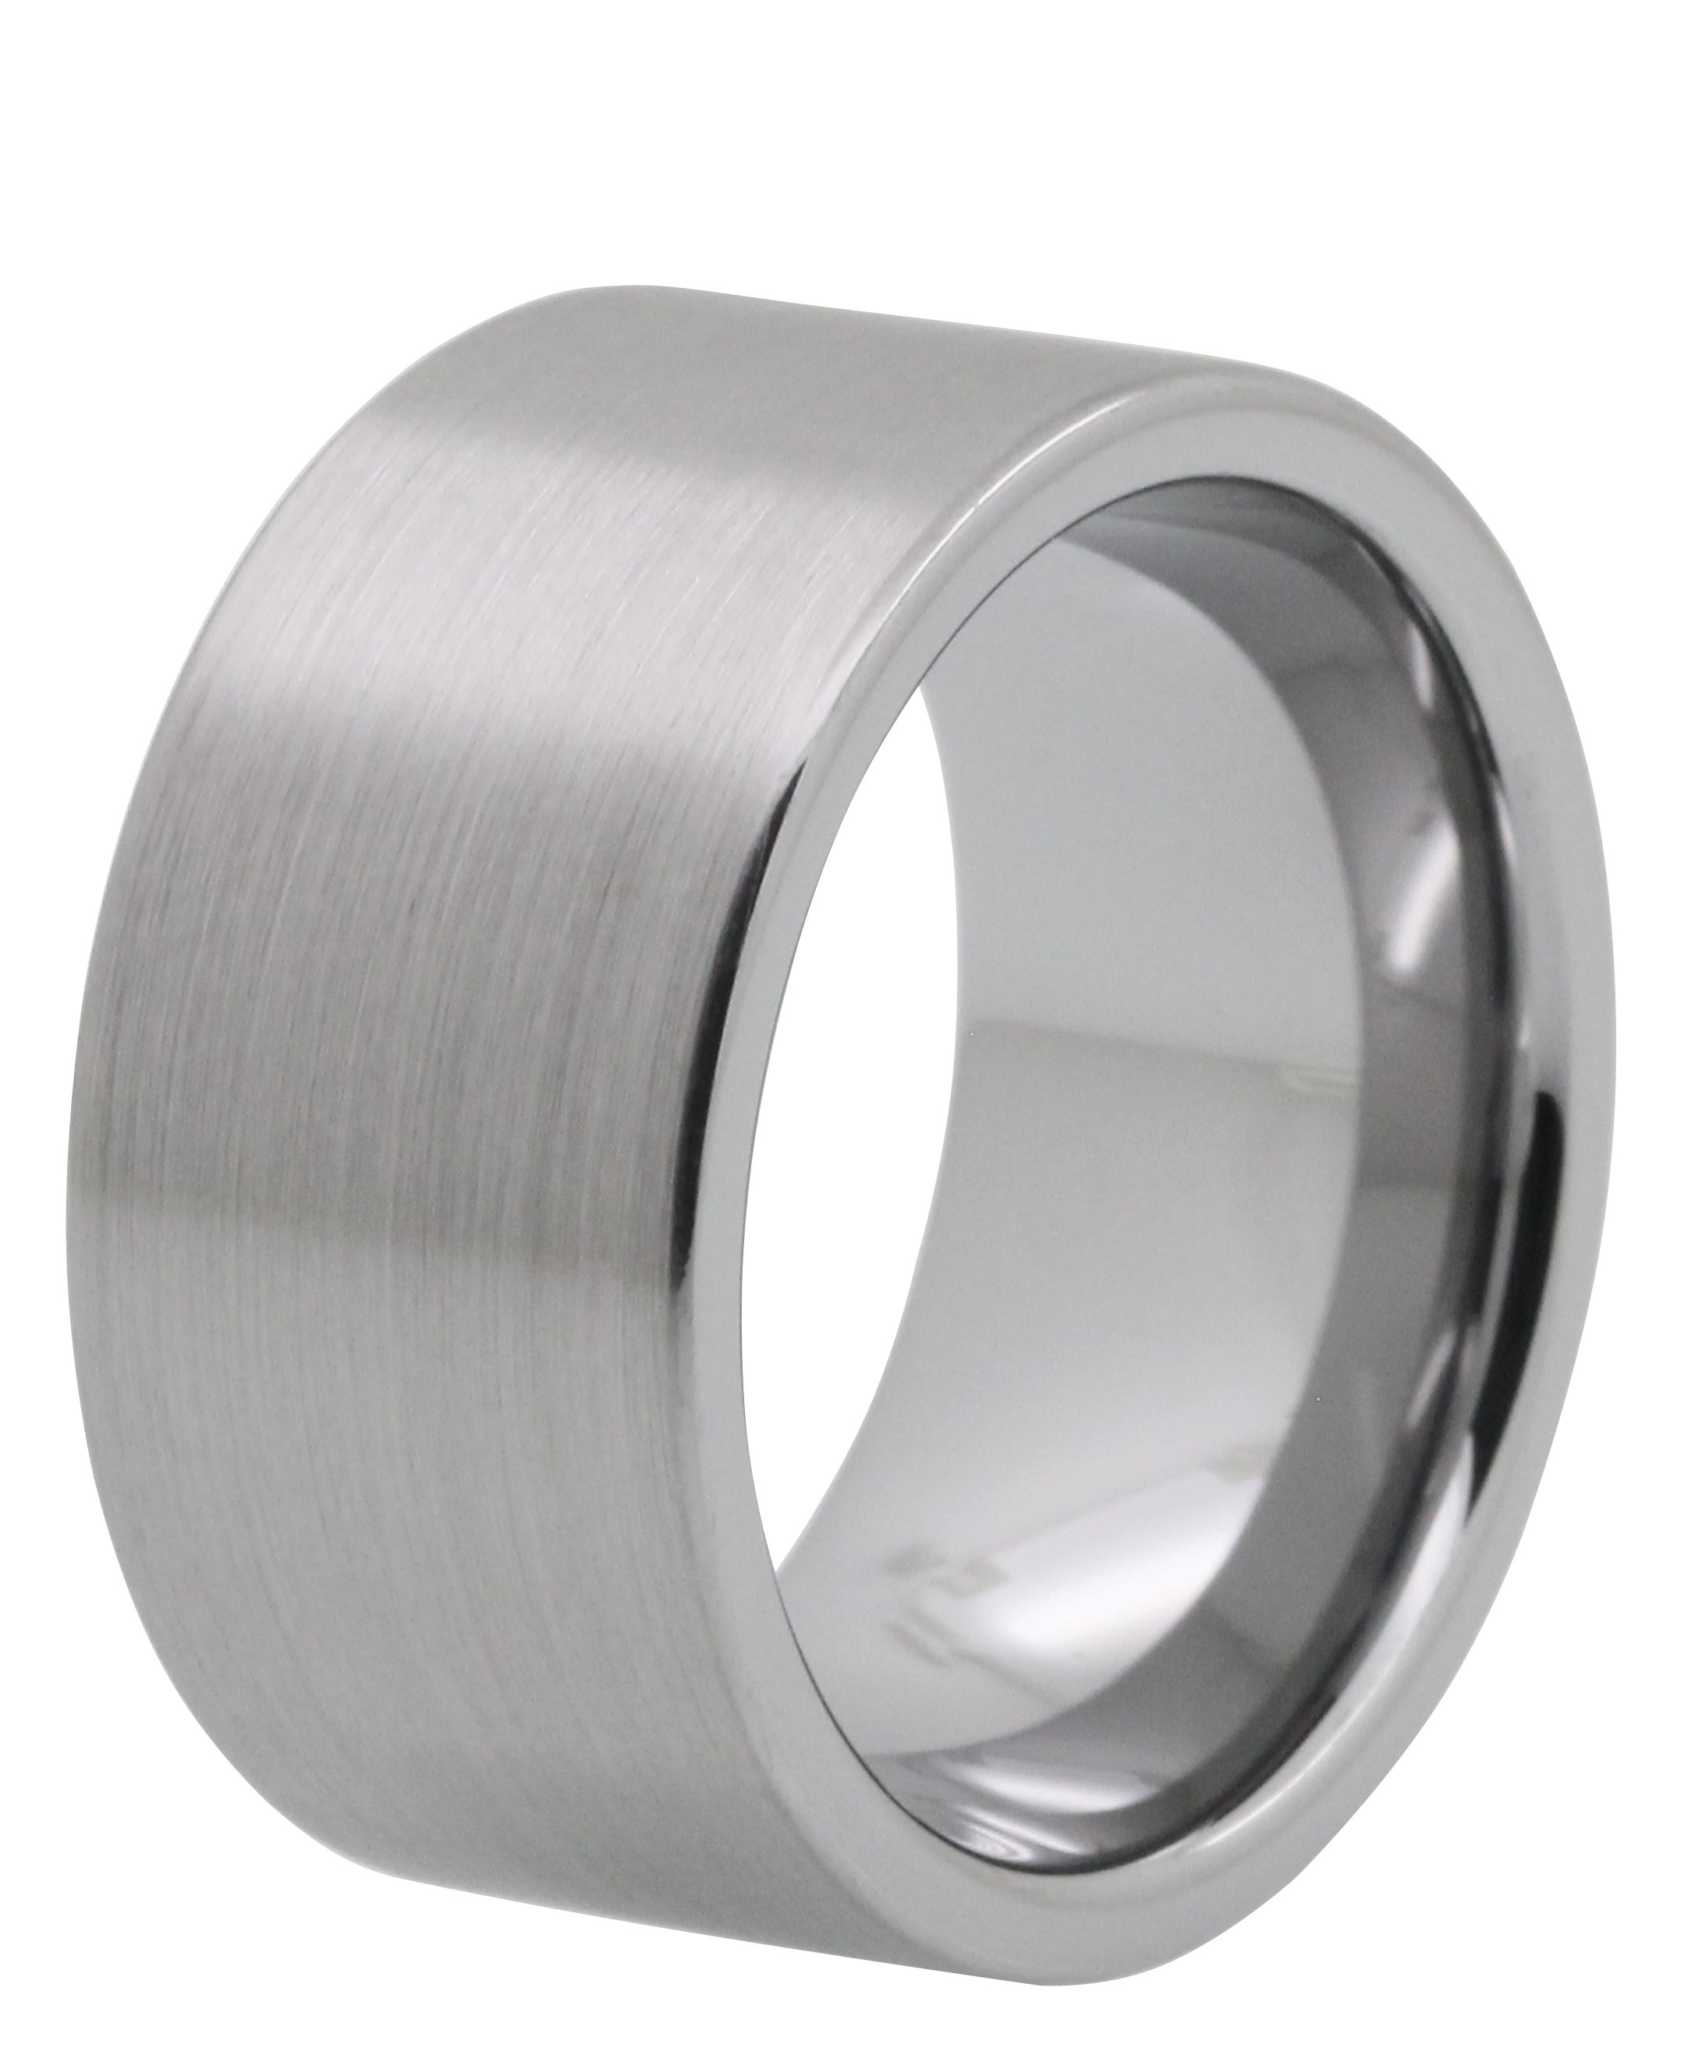 wide tungsten rings wide wedding bands 12MM Brushed Tayloright Tungsten Carbide Ring